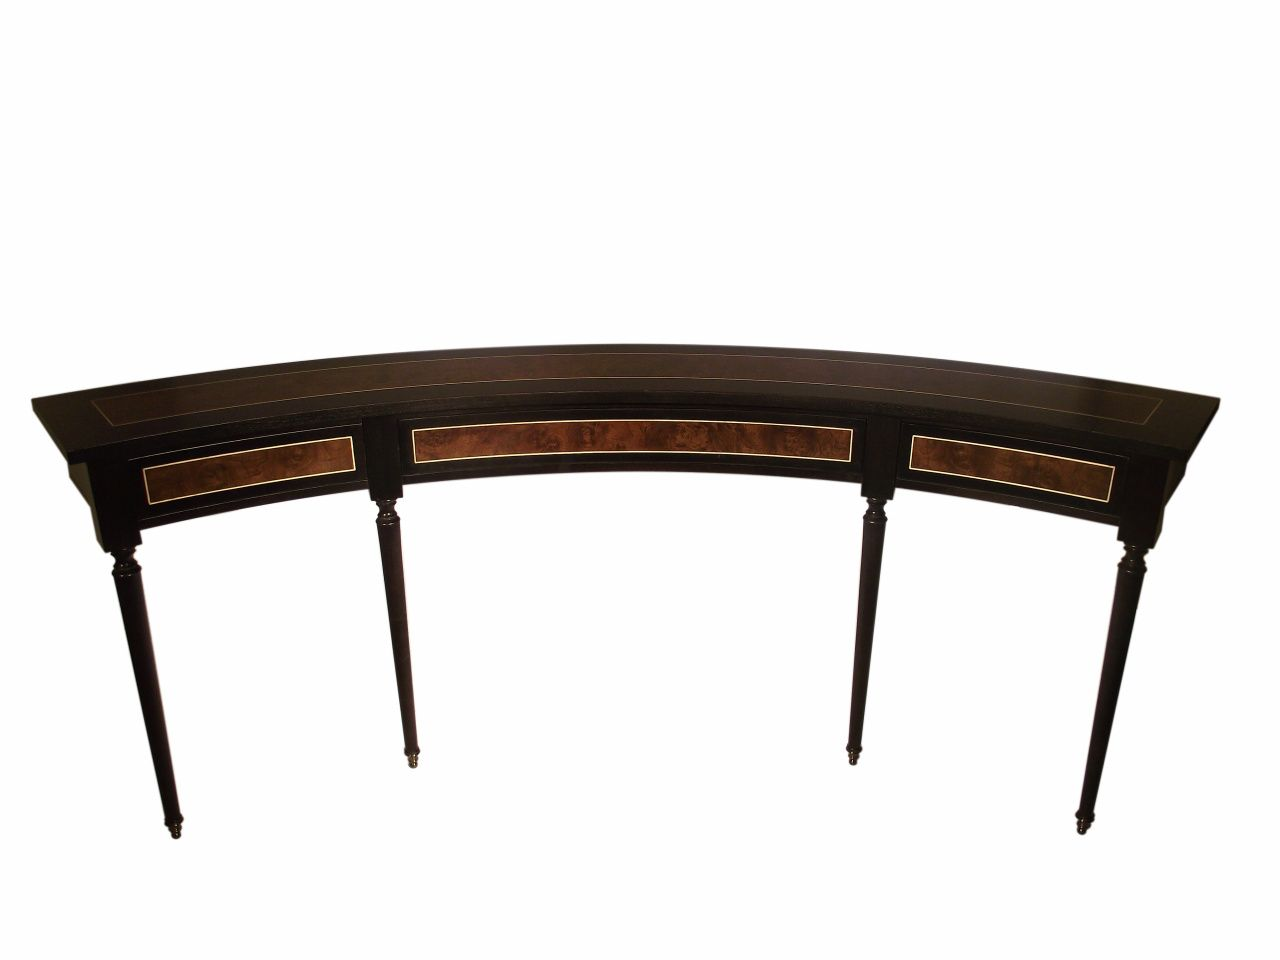 Fine Pin By Annora On The Sofa Interior Curved Sofa Table Sofa Ibusinesslaw Wood Chair Design Ideas Ibusinesslaworg